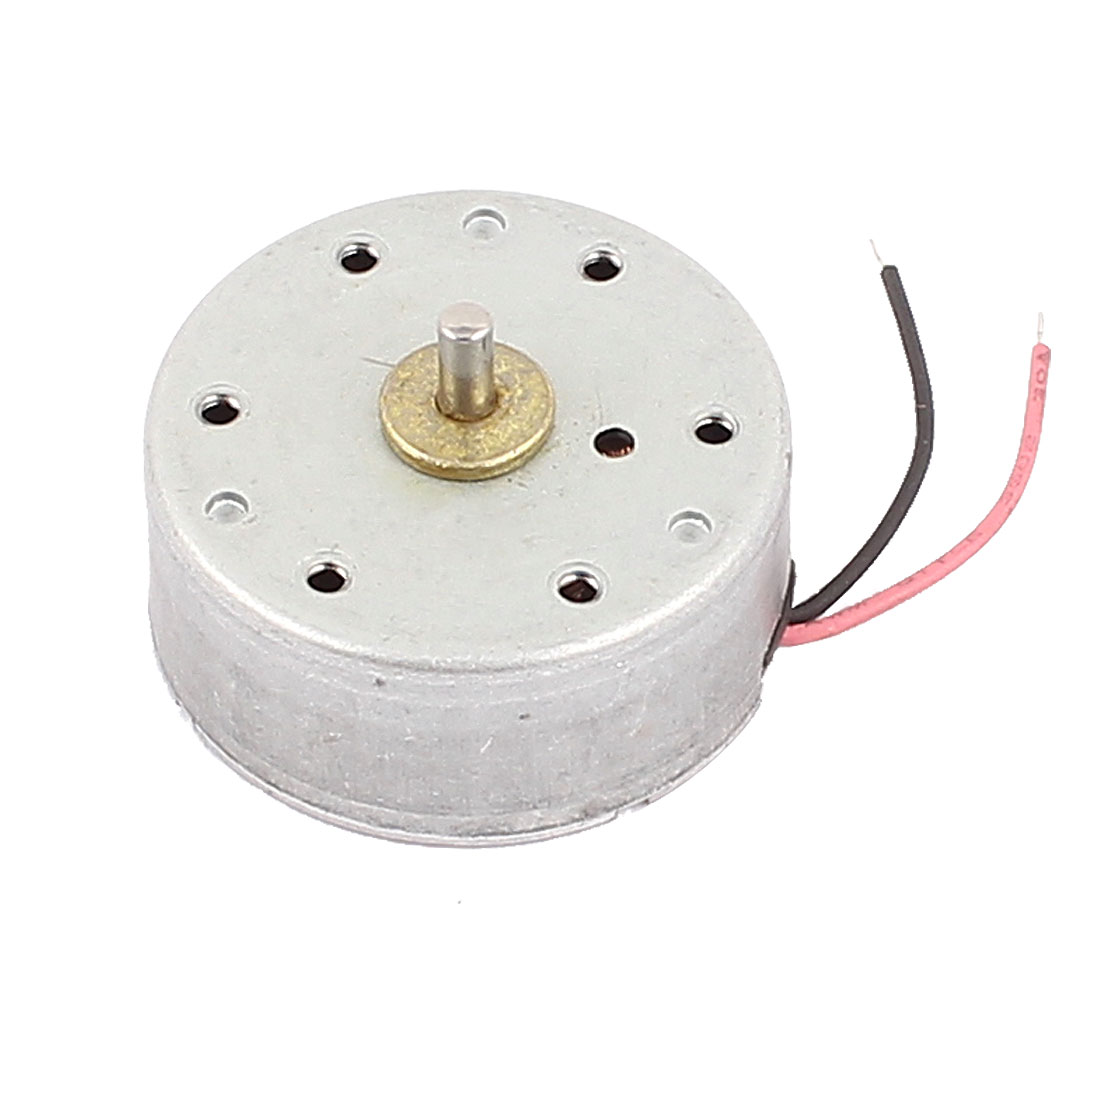 DC 3-5V 7500RPM 10x24mm Electric Mini Motor 400 for CD DVD Player